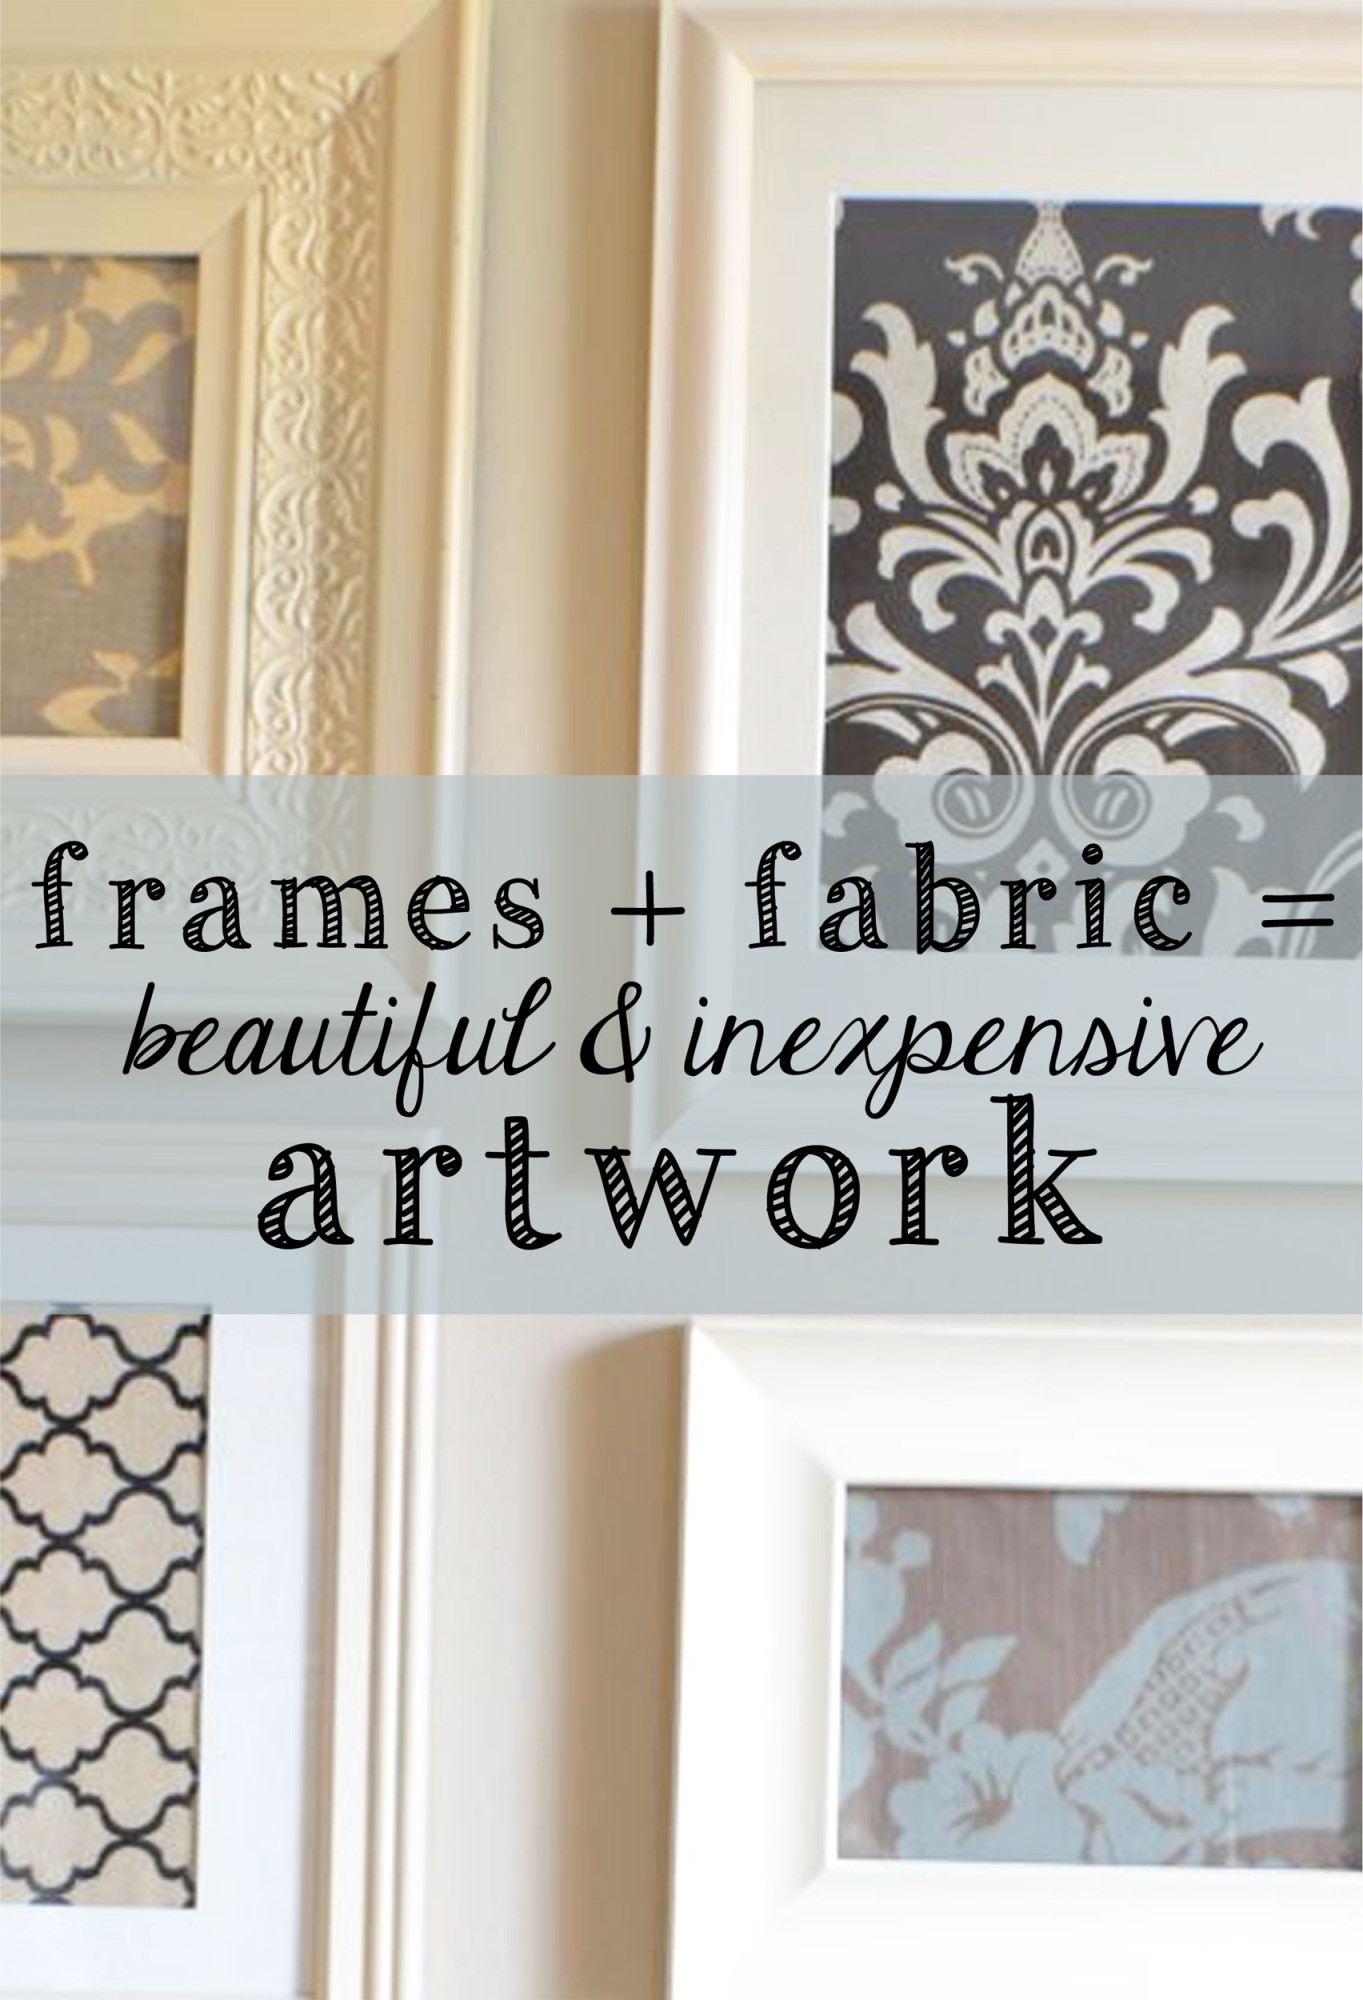 Create-pretty-wall-art-with-fabric-and-frames-Buy-fabric-remnants-on-clearance-and-find-inexpensiv-wallpaper-wp4805568